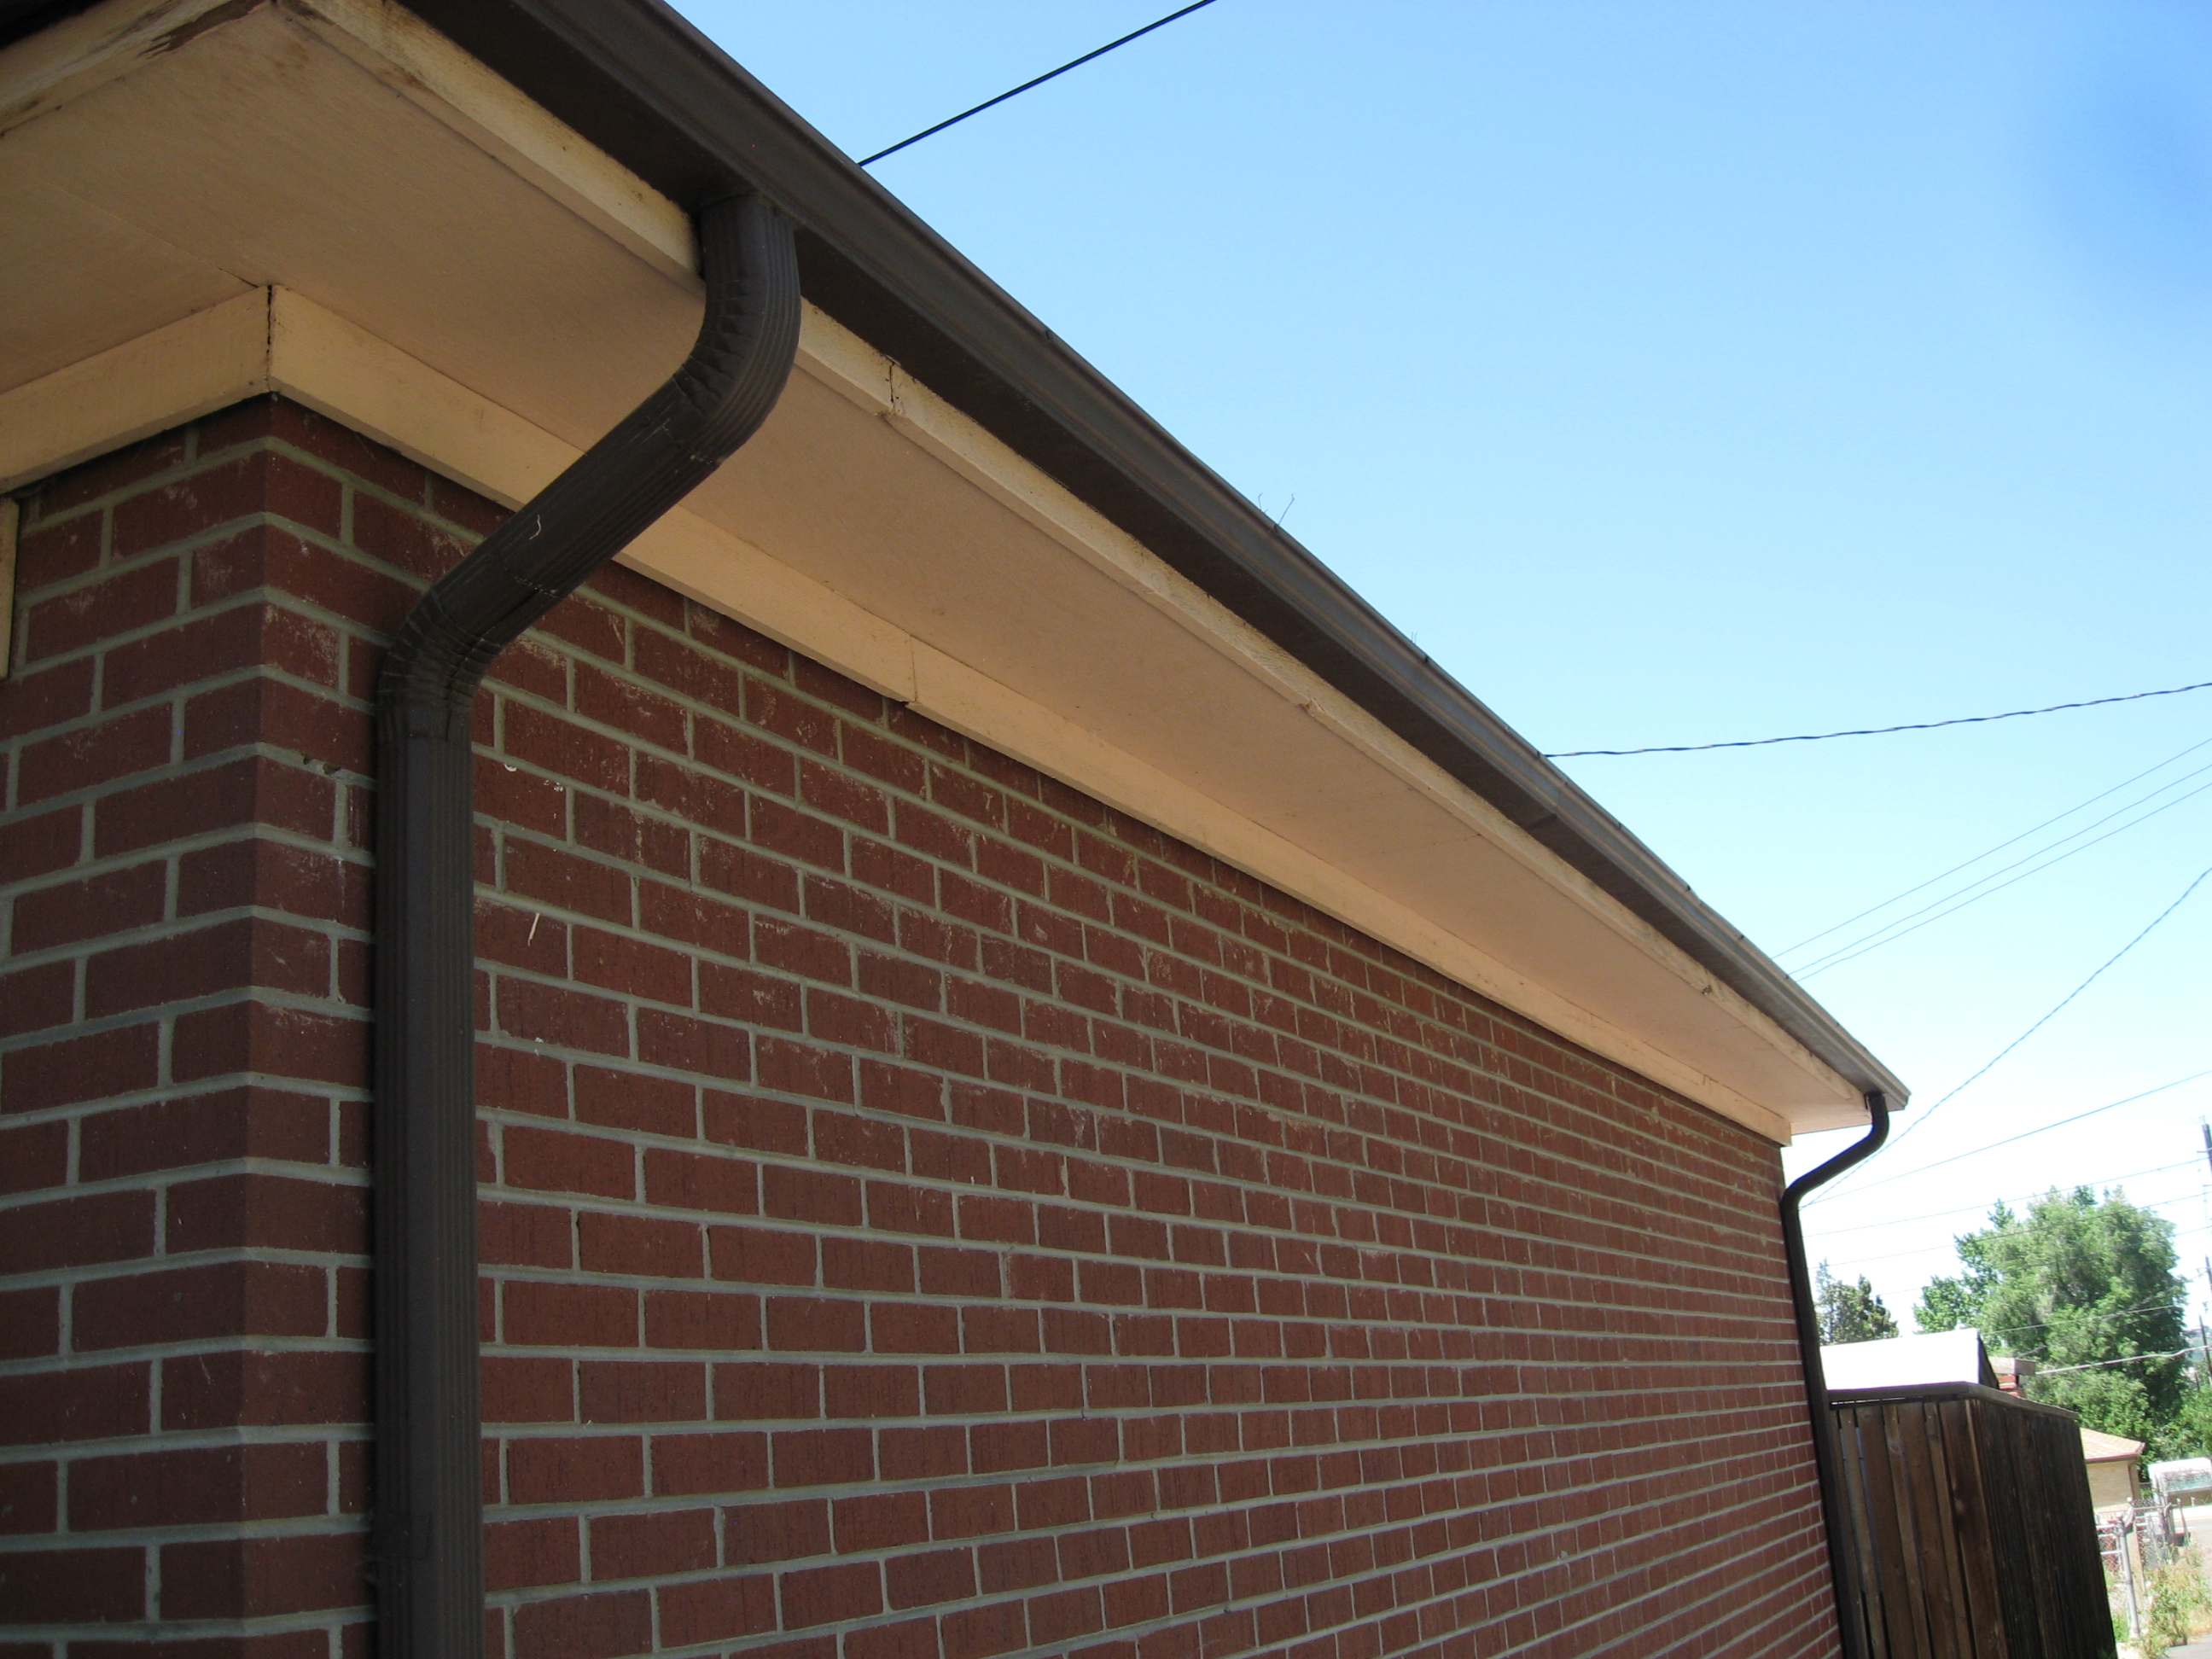 Advantages painting exterior home and replacing gutters eco paint inc - The house without walls ...